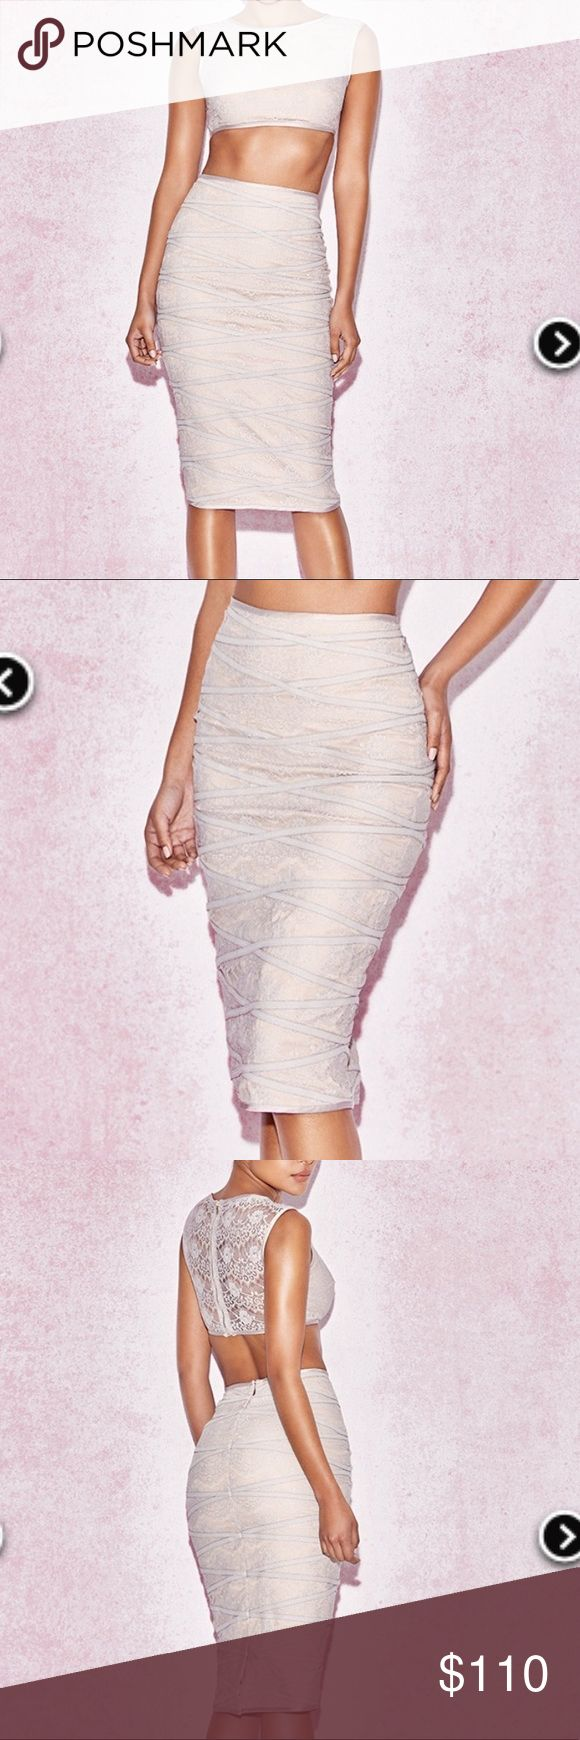 NWT House of CB two piece outfit NWT grey lace two piece top and skirt both in m... 2